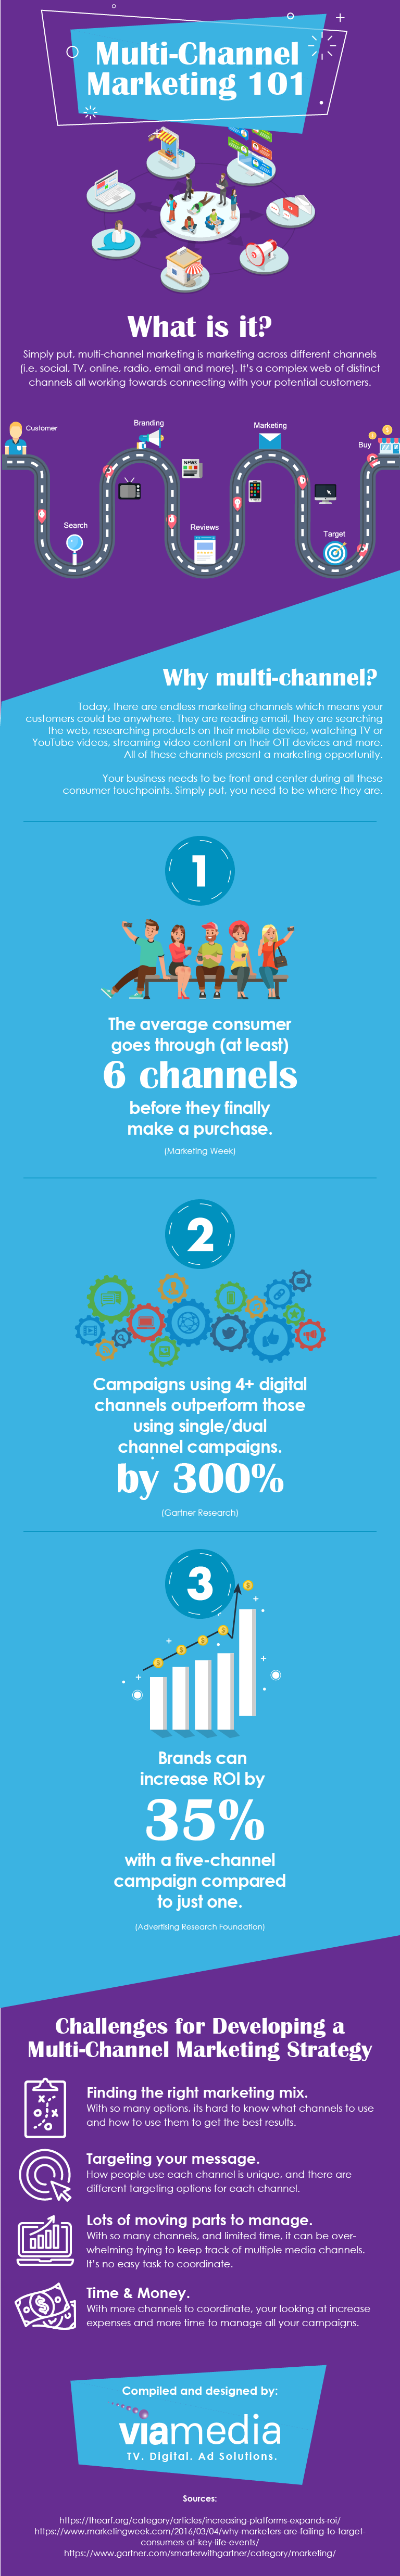 Multi-channel marketing infographic-2